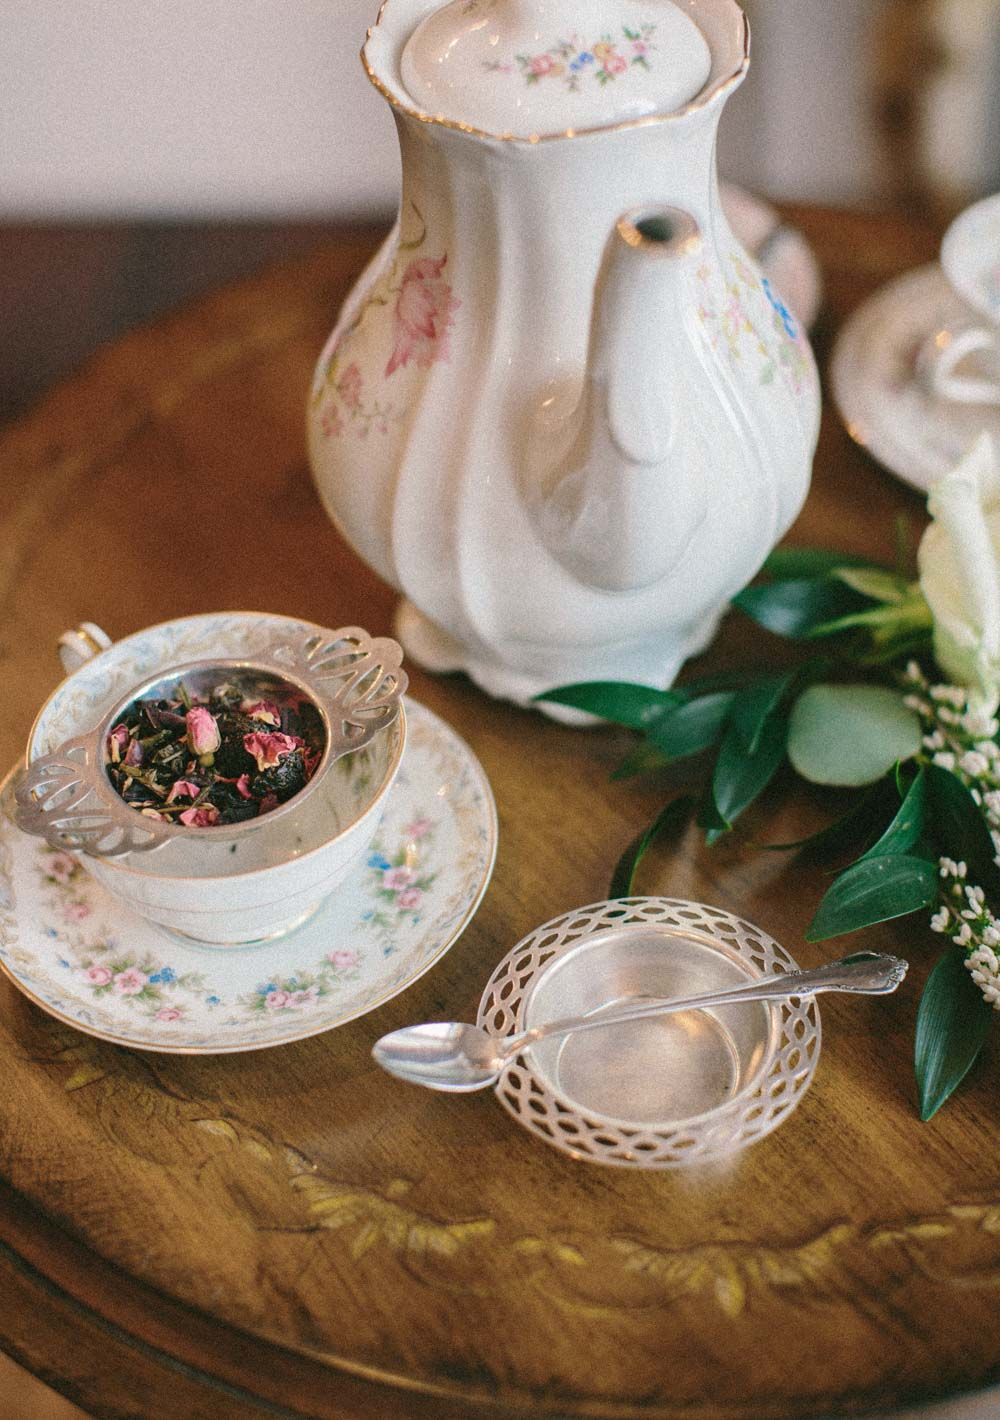 rose tea in floral printed china tea set